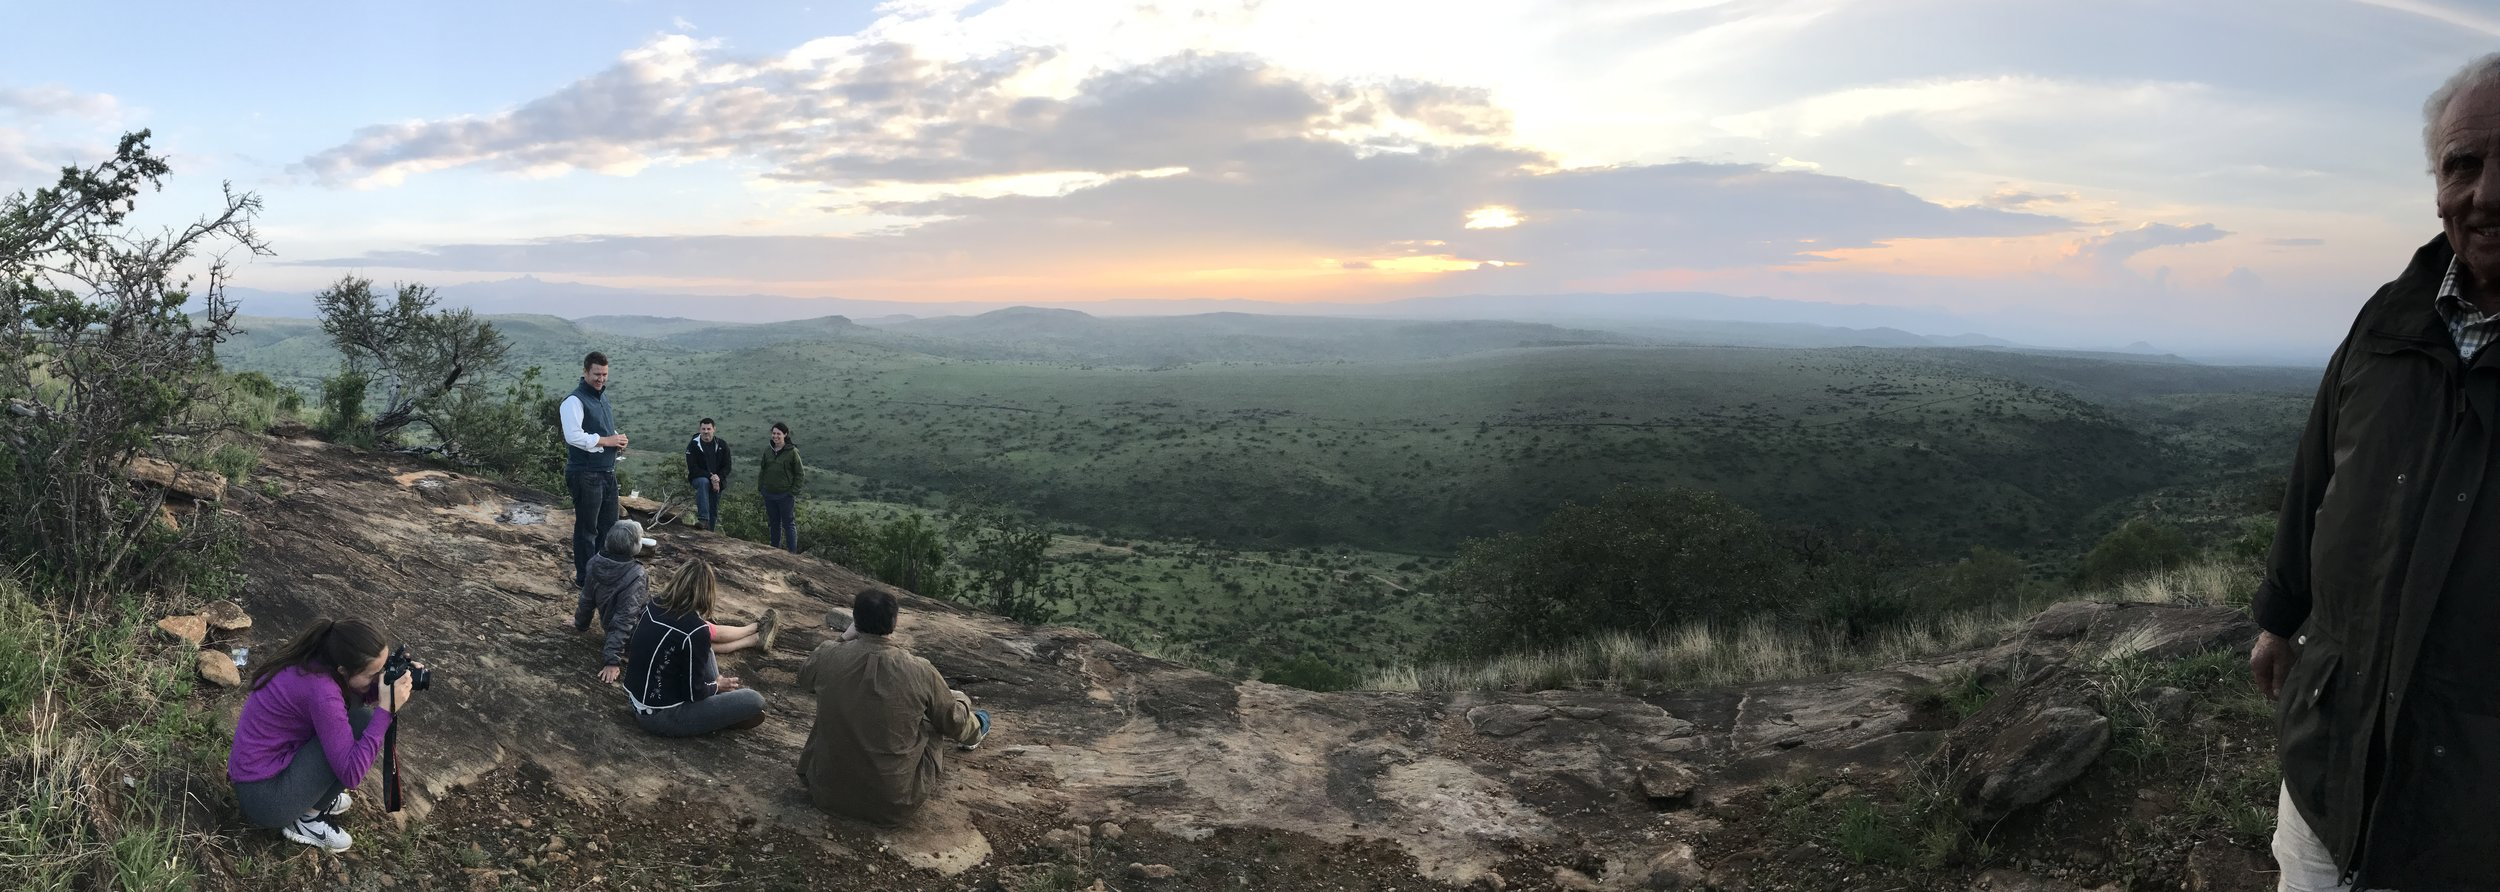 Sundowners are just the best